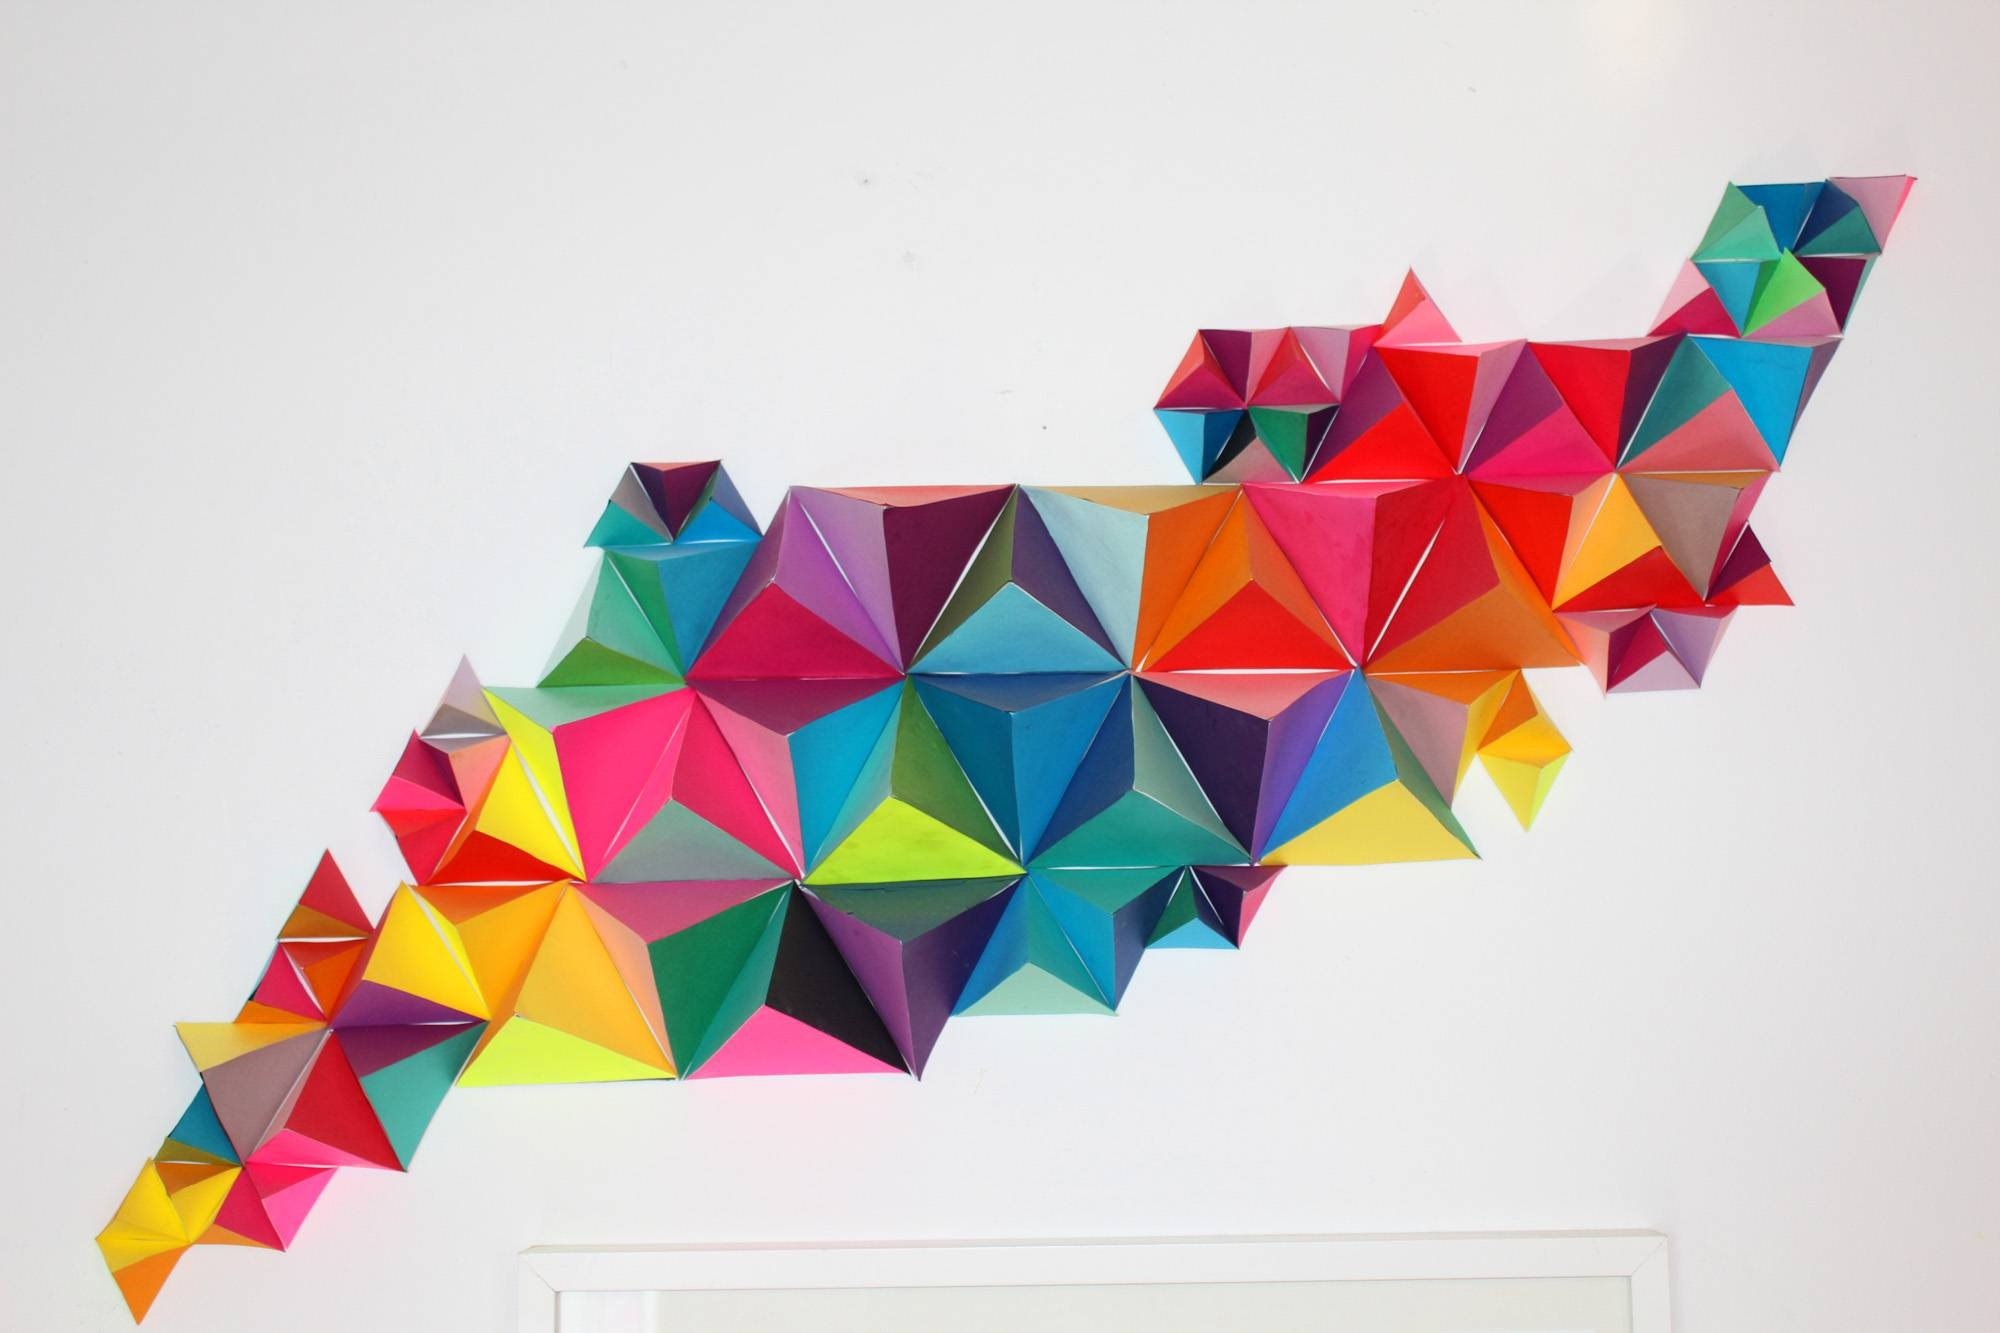 3d Geometric Wall Sculpture Sm | Make: Diy Projects And Ideas For Intended For Most Up To Date 3d Triangle Wall Art (View 2 of 20)